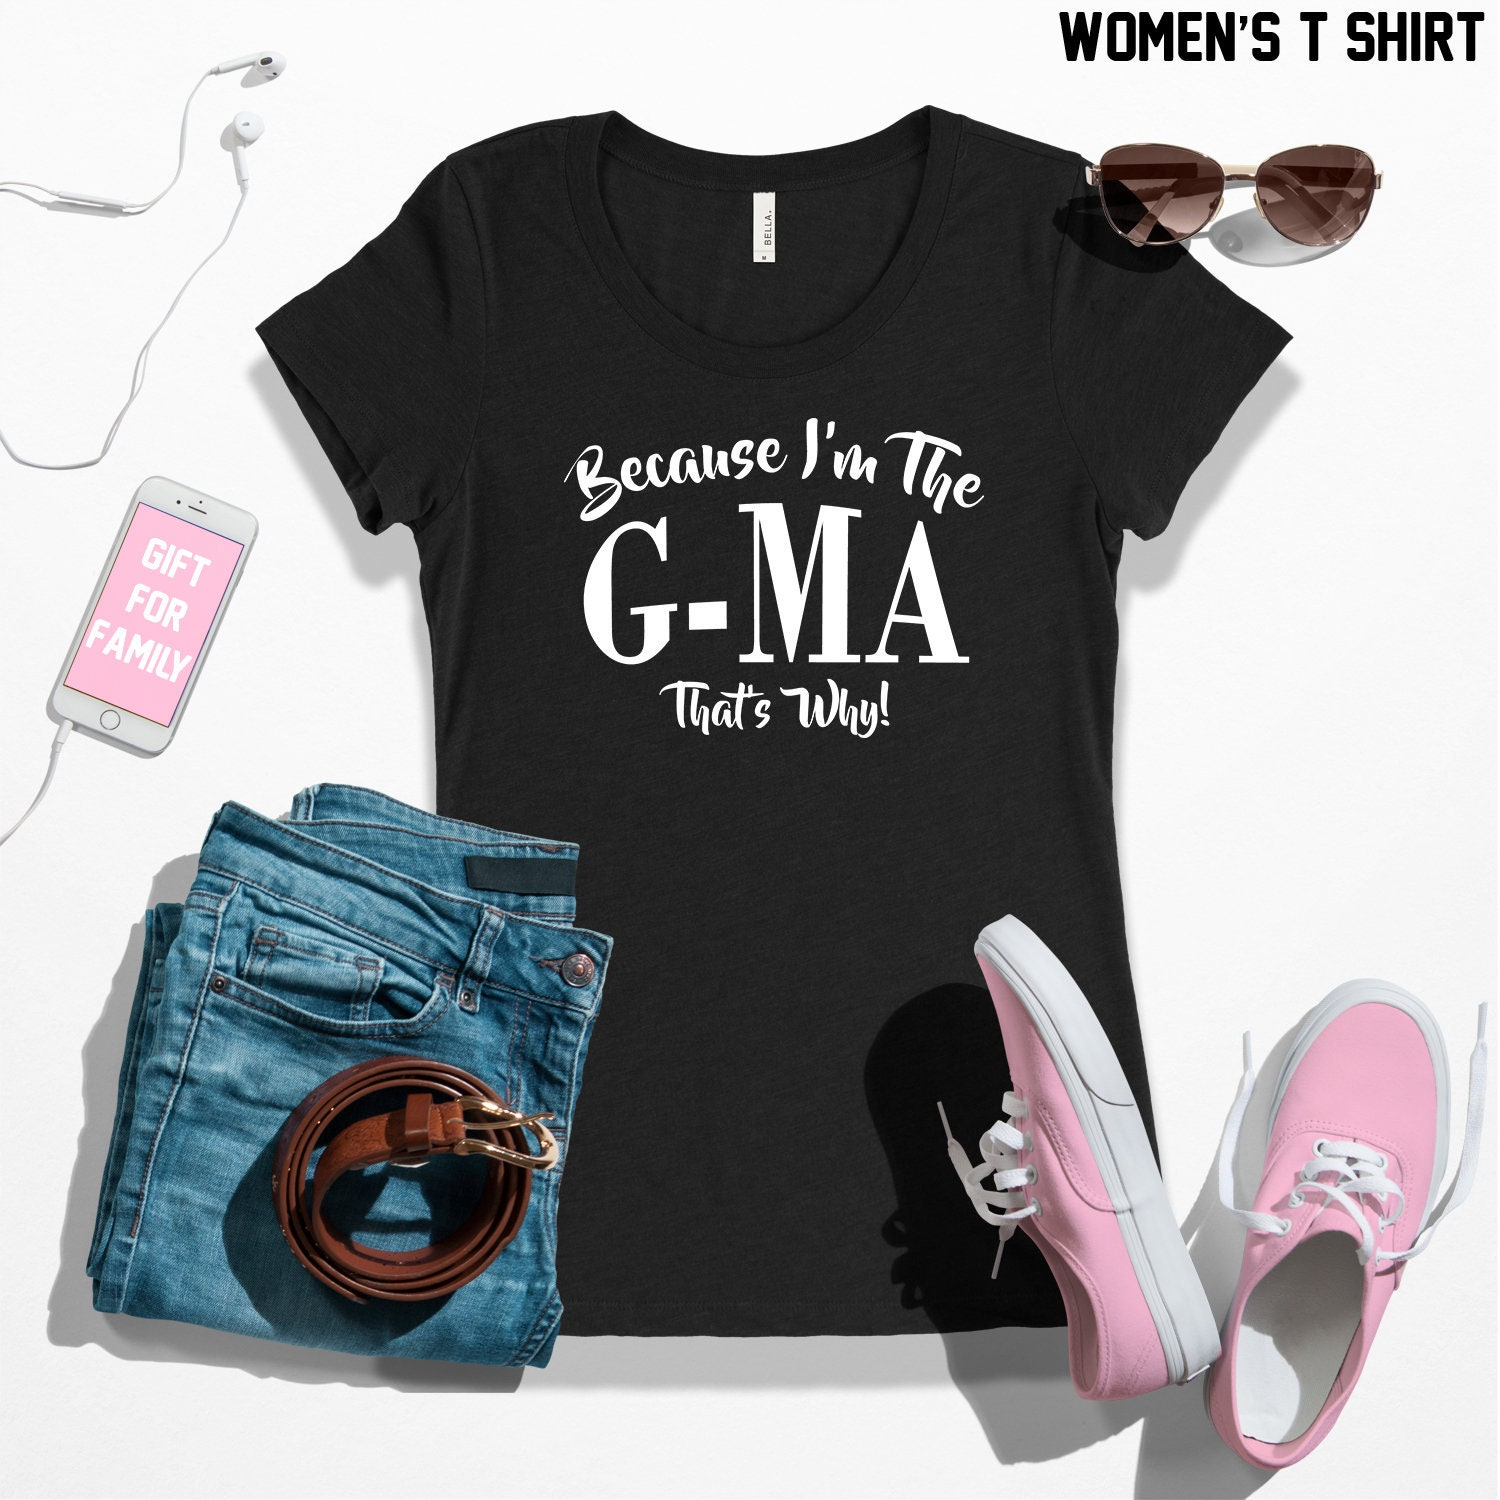 609dfb955 Because I'm the g-ma that's why t shirt grandma t | Etsy